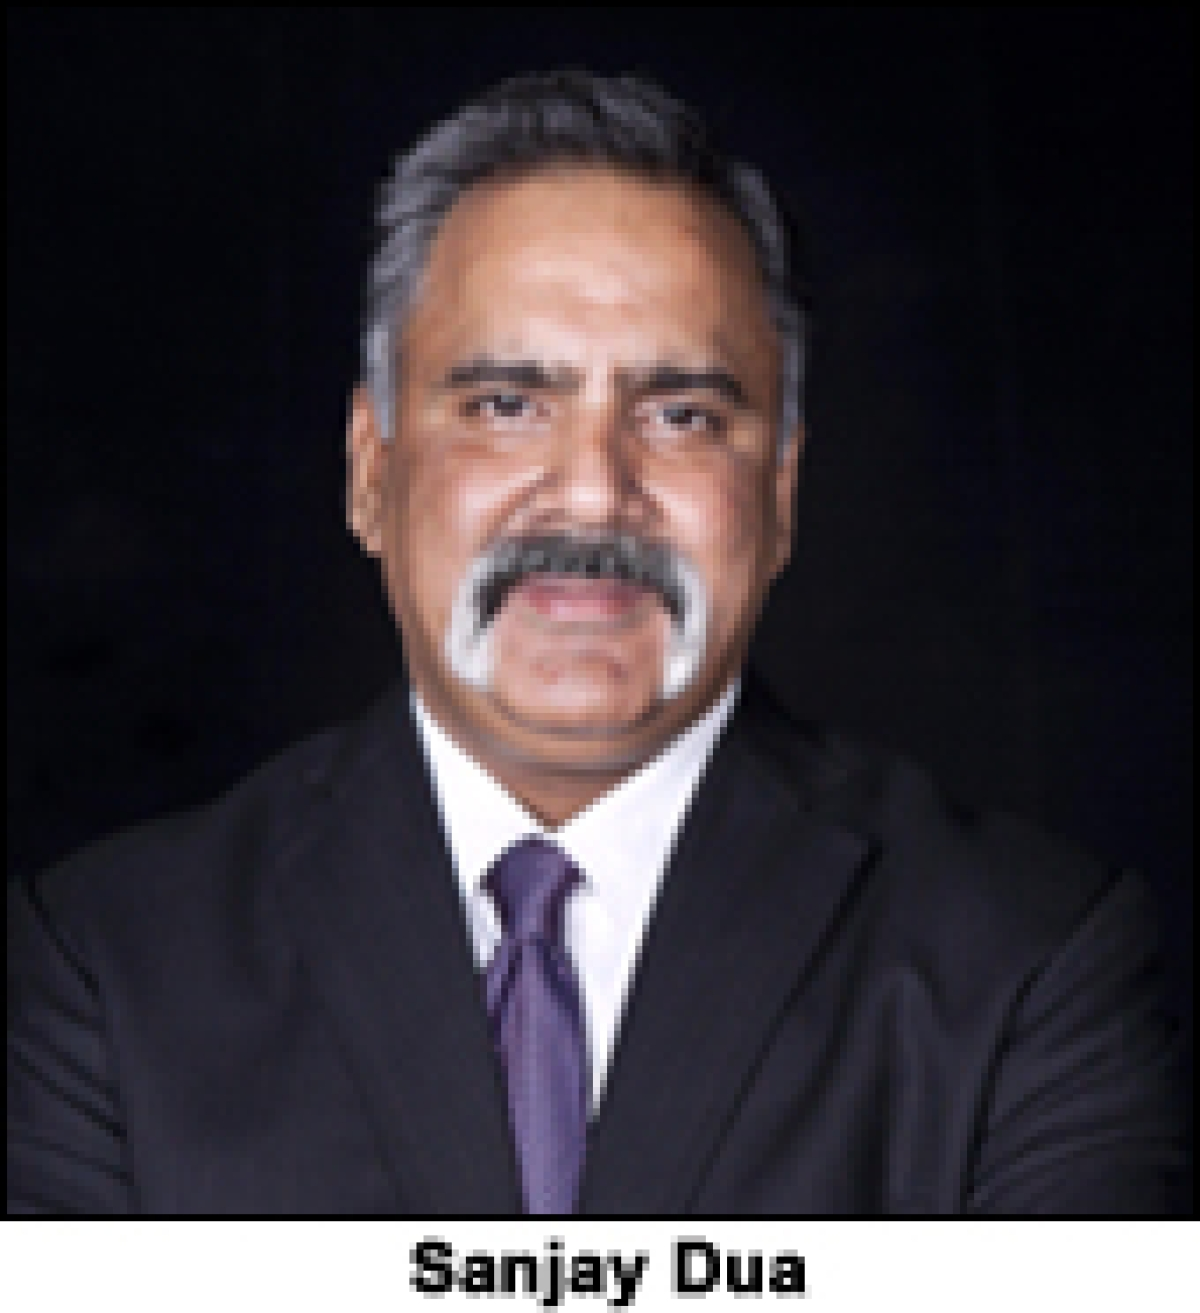 Network18 News Media Network appoints Sanjay Dua as CEO